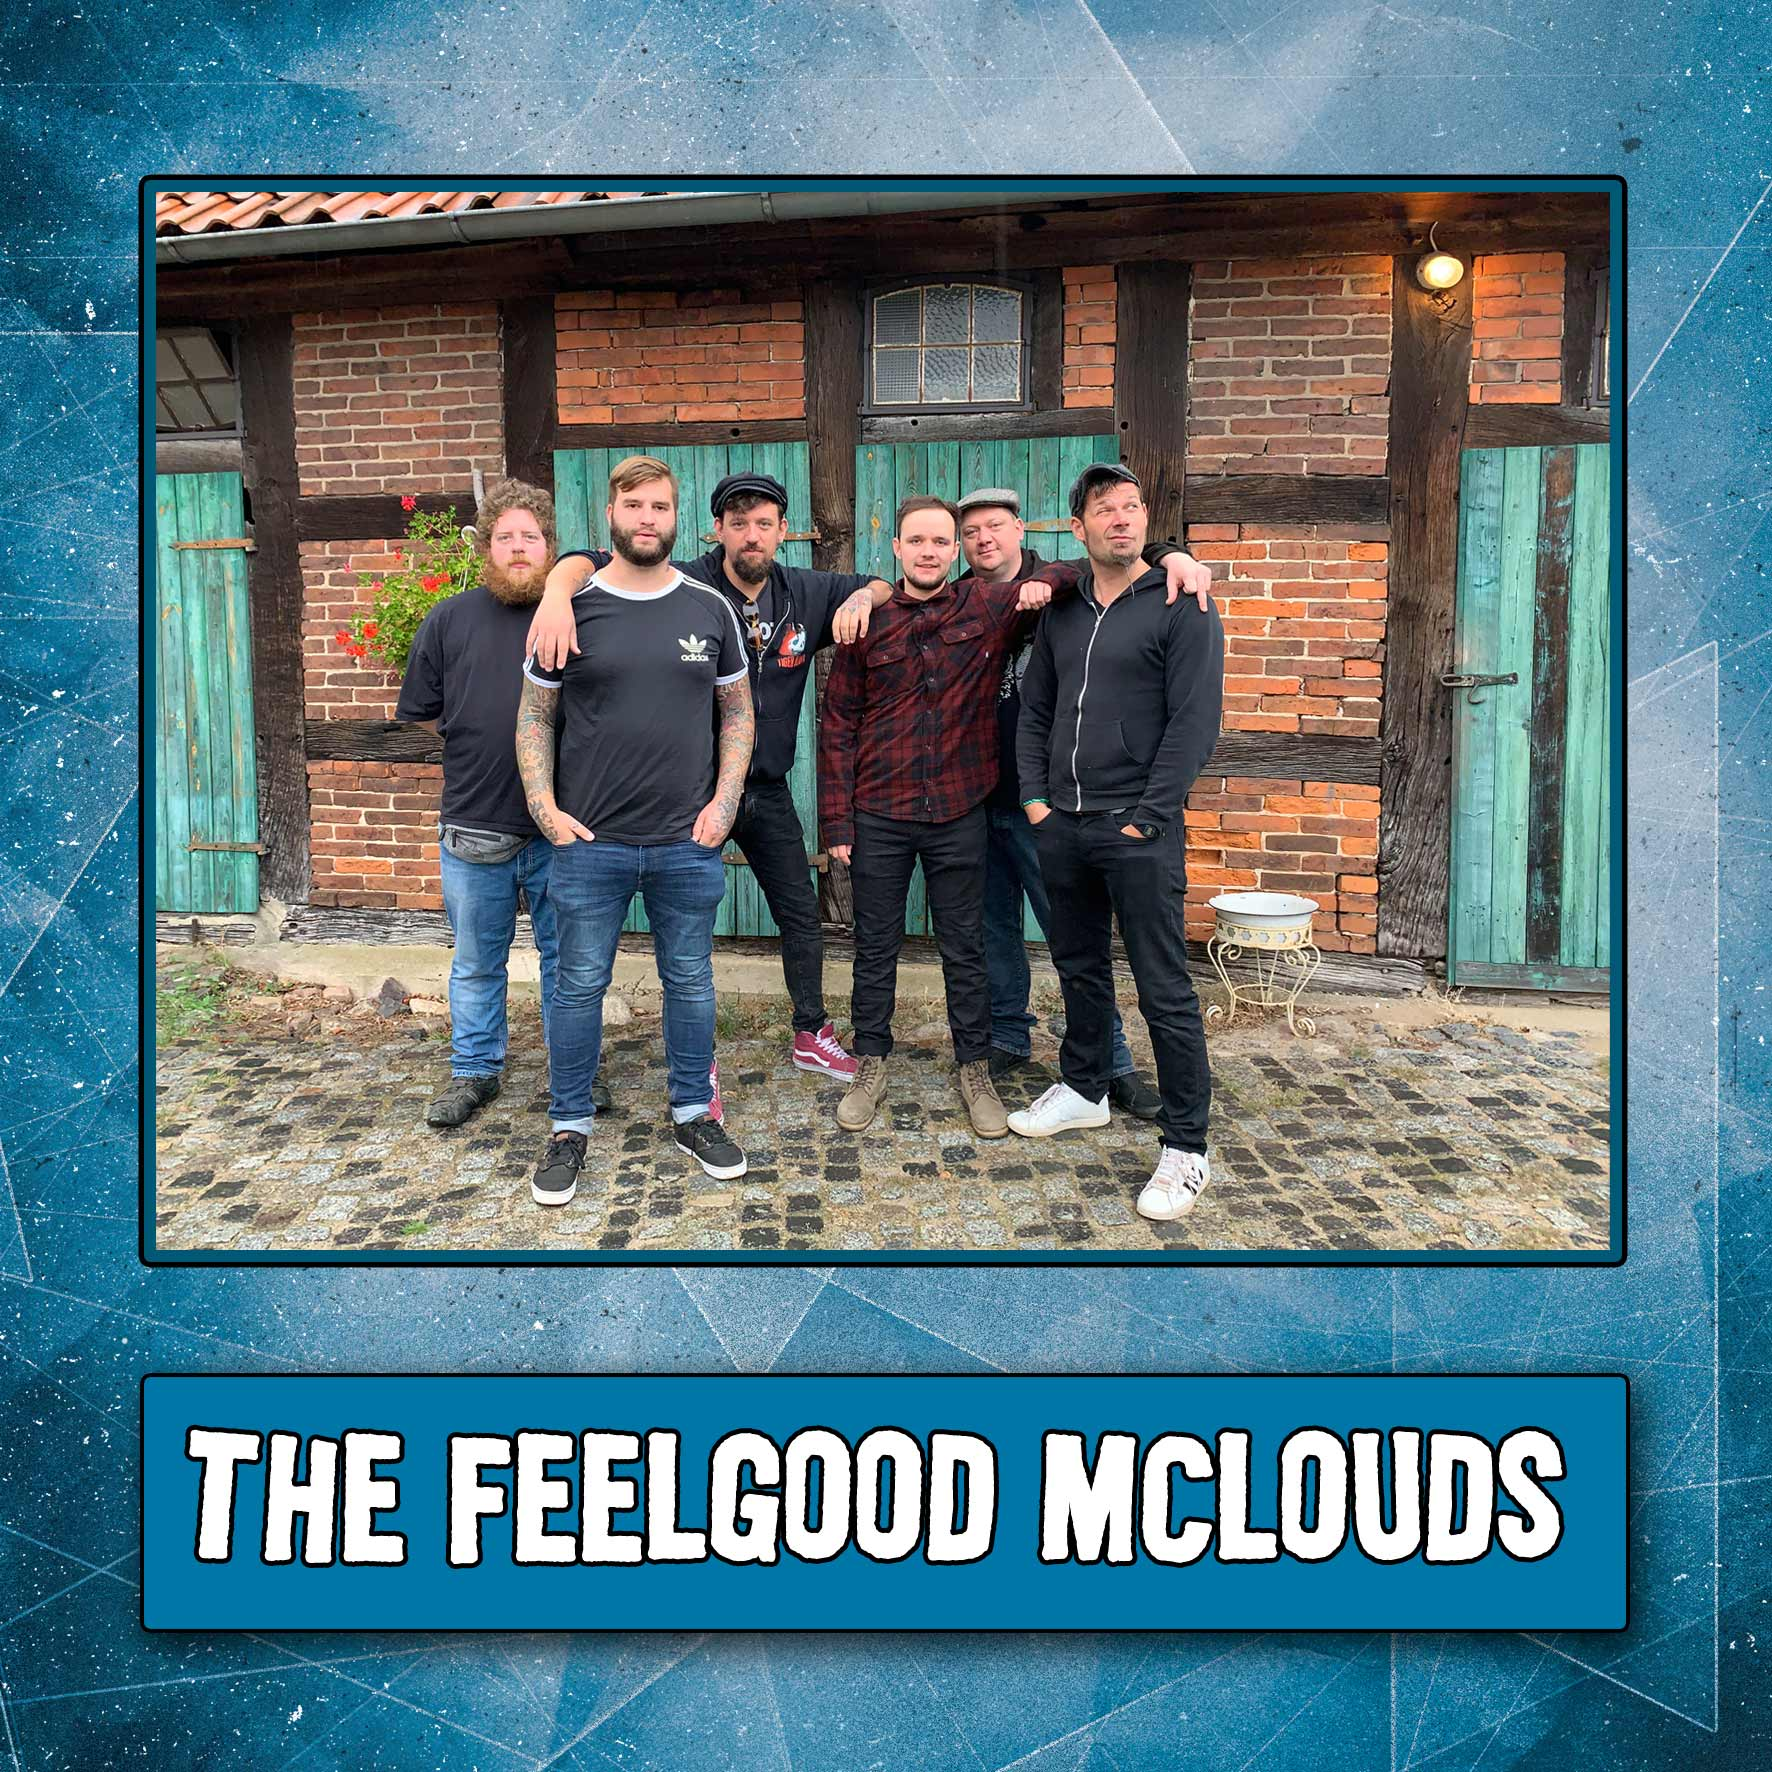 THE FEELGOOD MCLOUDS